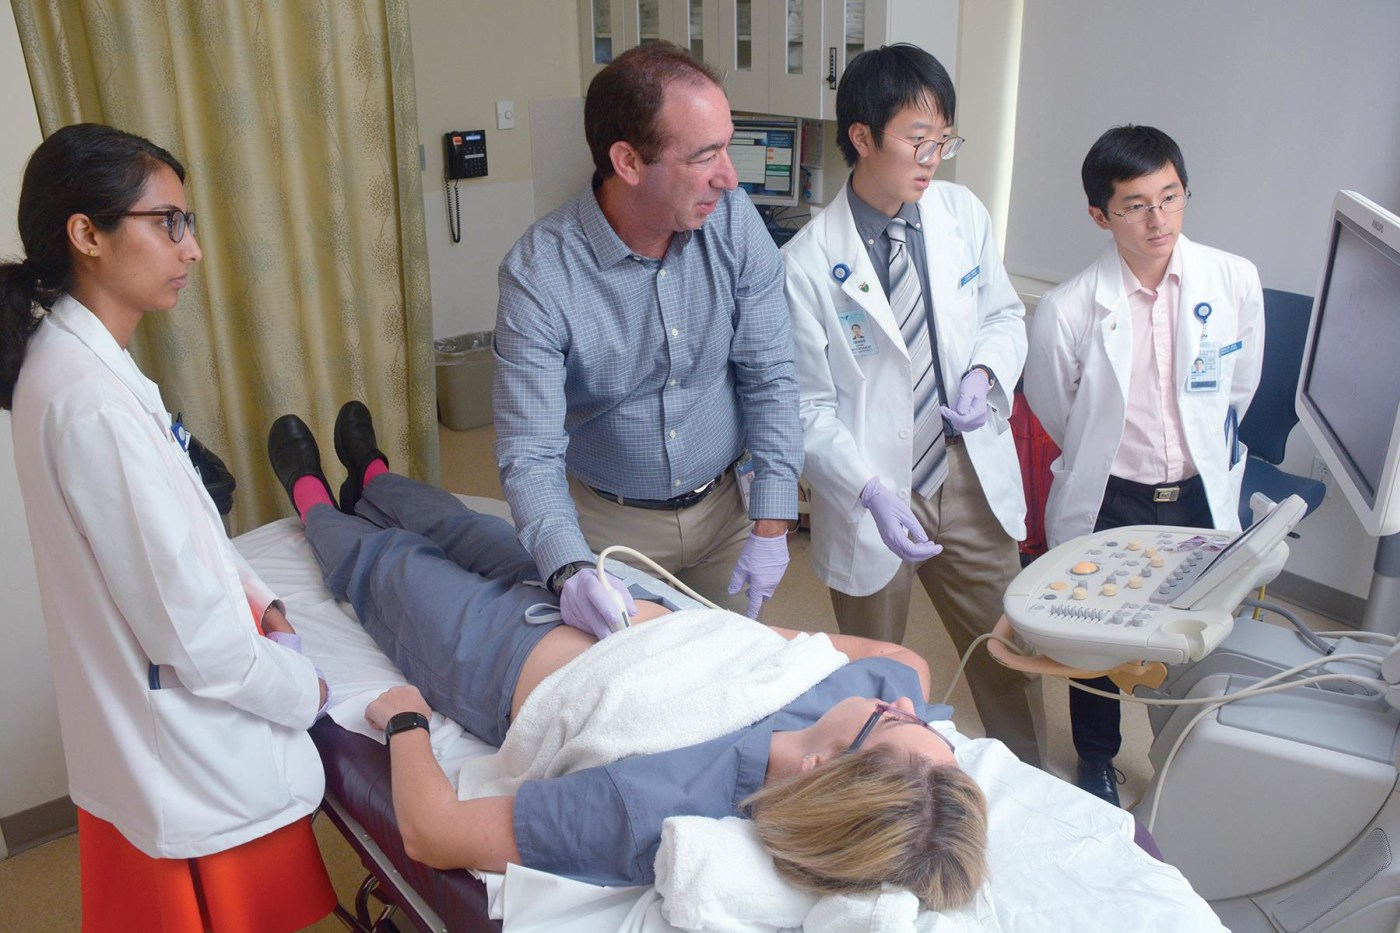 In August, first-years Nikitha Murali, Charles Hsu, and Dennis Wang, learned how to do ultrasounds under the tutelage of Jonathan Kirsch. Kim Siefert, a resident, played the role of patient